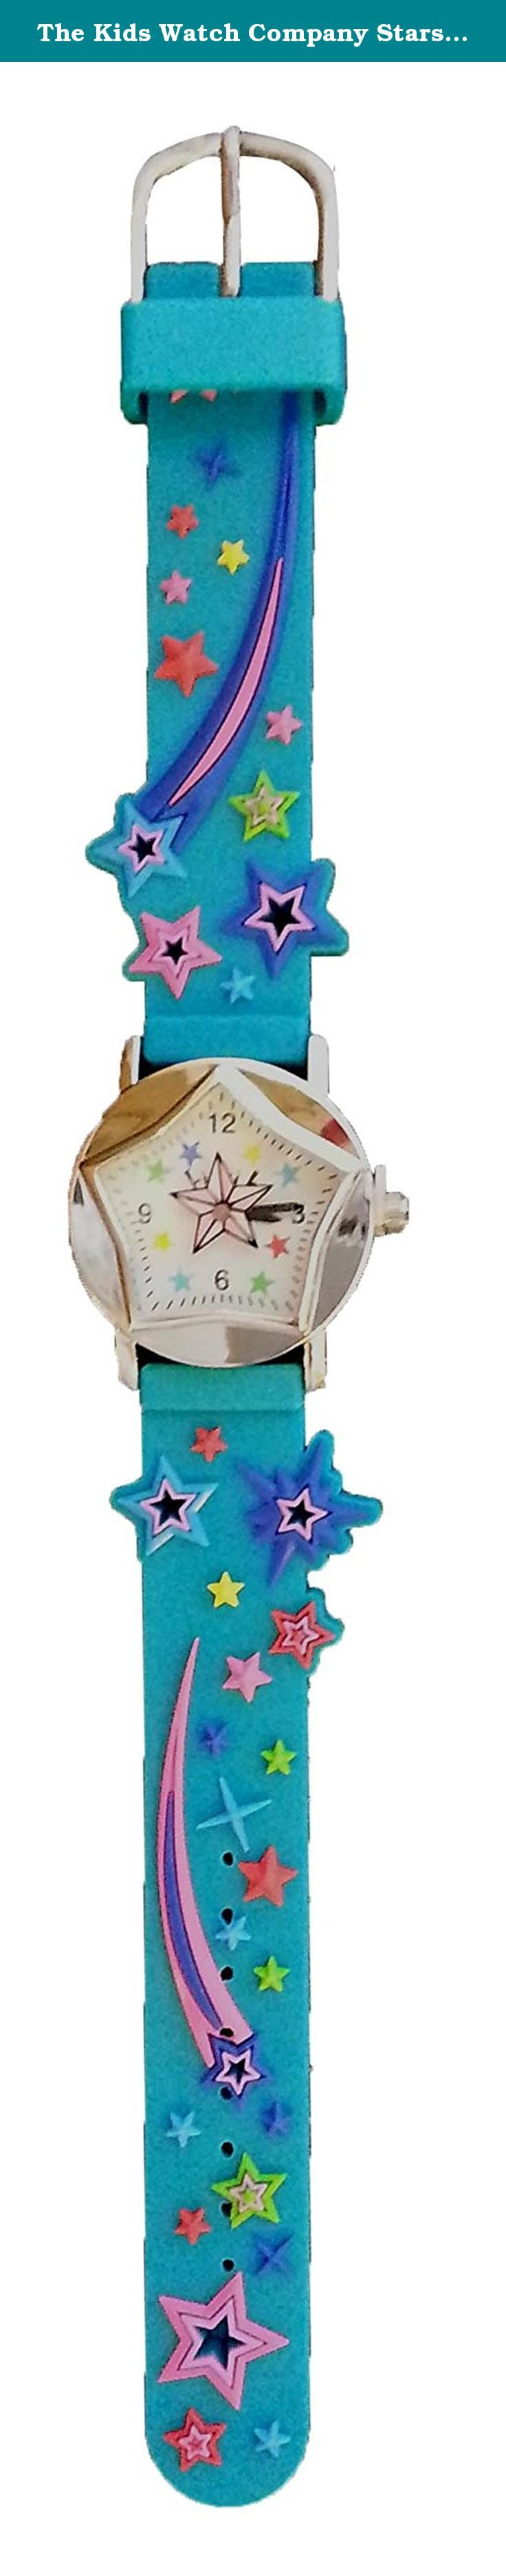 The Kids Watch Company Stars Watch One Size Teal Band. Children will love this colorful theme watch that will make learning to tell time fun! The Stars watch has a teal PVC band with raised colorful stars and shooting stars. The watch has a star second hand, and the watch face is star shaped and printed with coordinating colors. The light weight and band width make it the perfect size to fit kids' small wrists. Ages 4 and up, Quartz movement, Analog battery operated (battery included)…